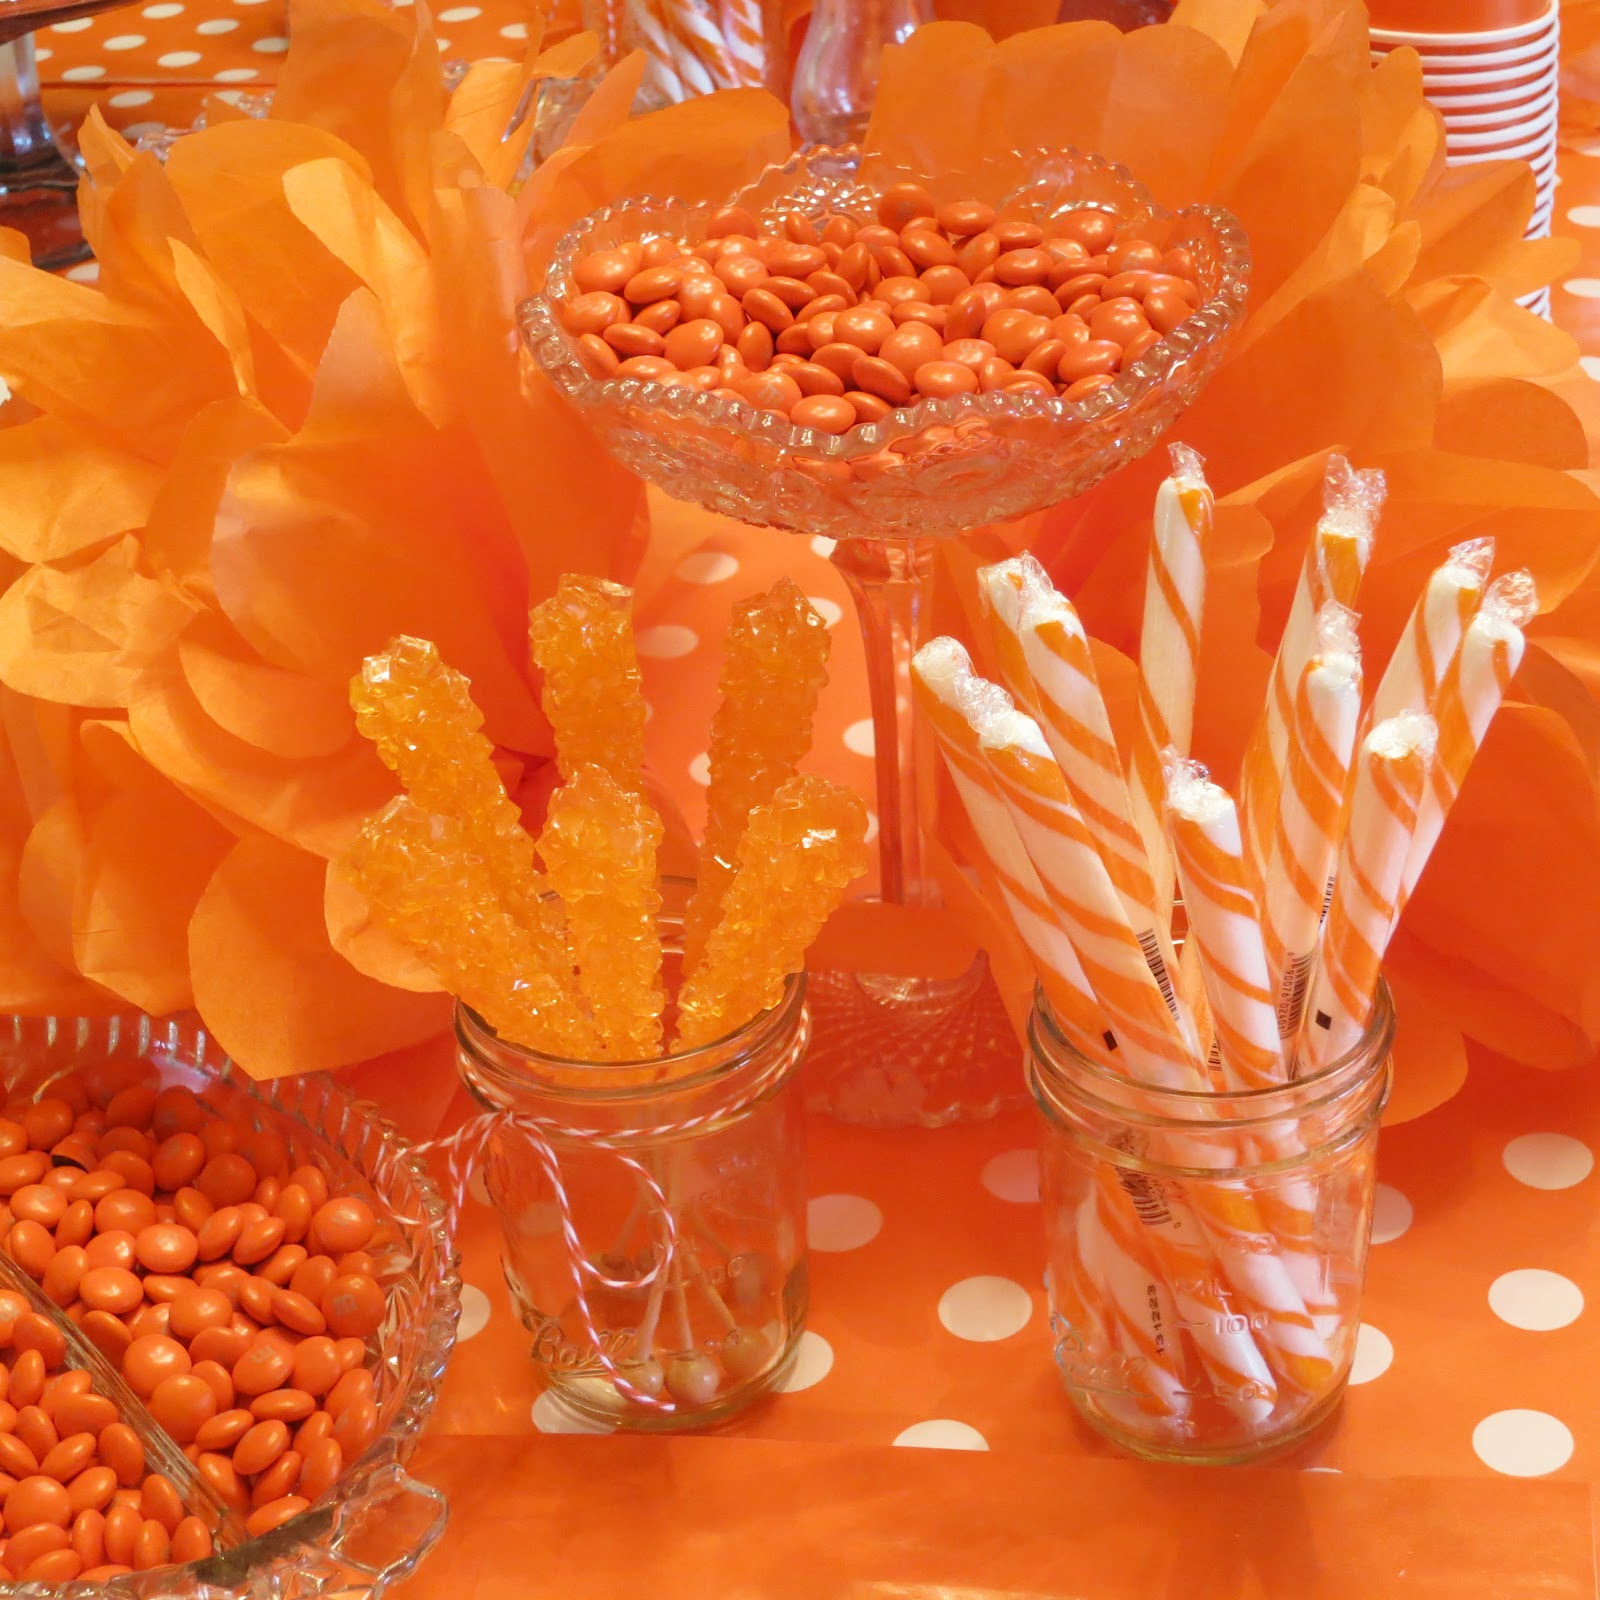 Orange Table Linens & Decor: baylionopur.ml - Your Online Table Linens & Decor Store! 6 or 12 month special financing available. Get 5% in rewards with Club O!